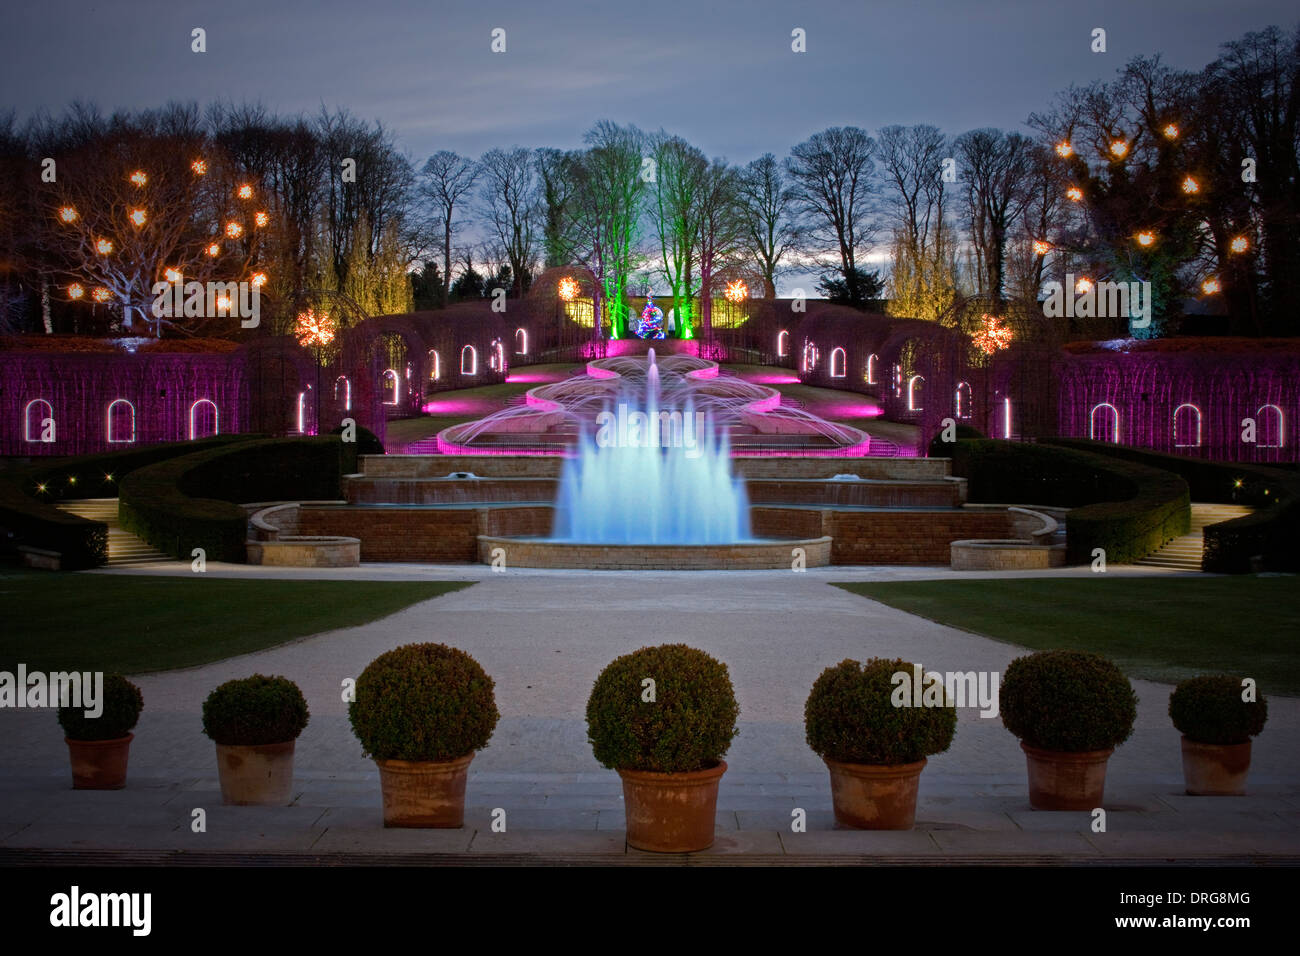 The Alnwick Garden in Alnwick, Northumberland floodlit at Christmas time - Stock Image